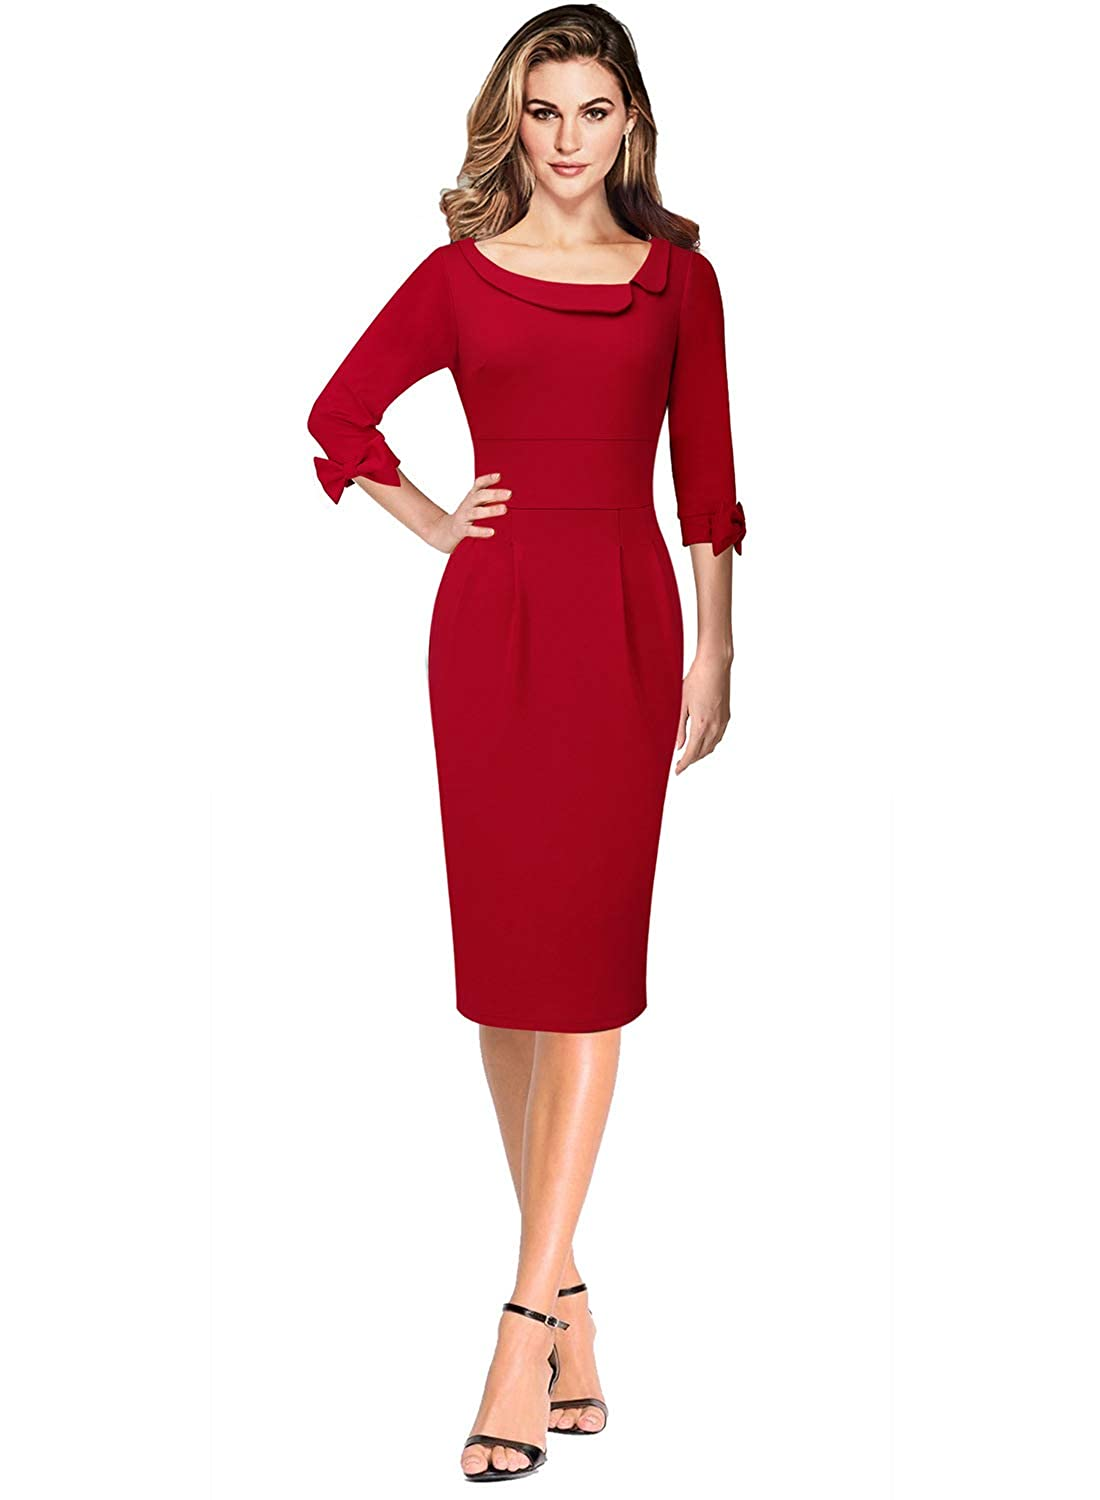 Red VFSHOW Asymmetric Neck Lapel Bow Sleeve Work Business Cocktail Sheath Dress